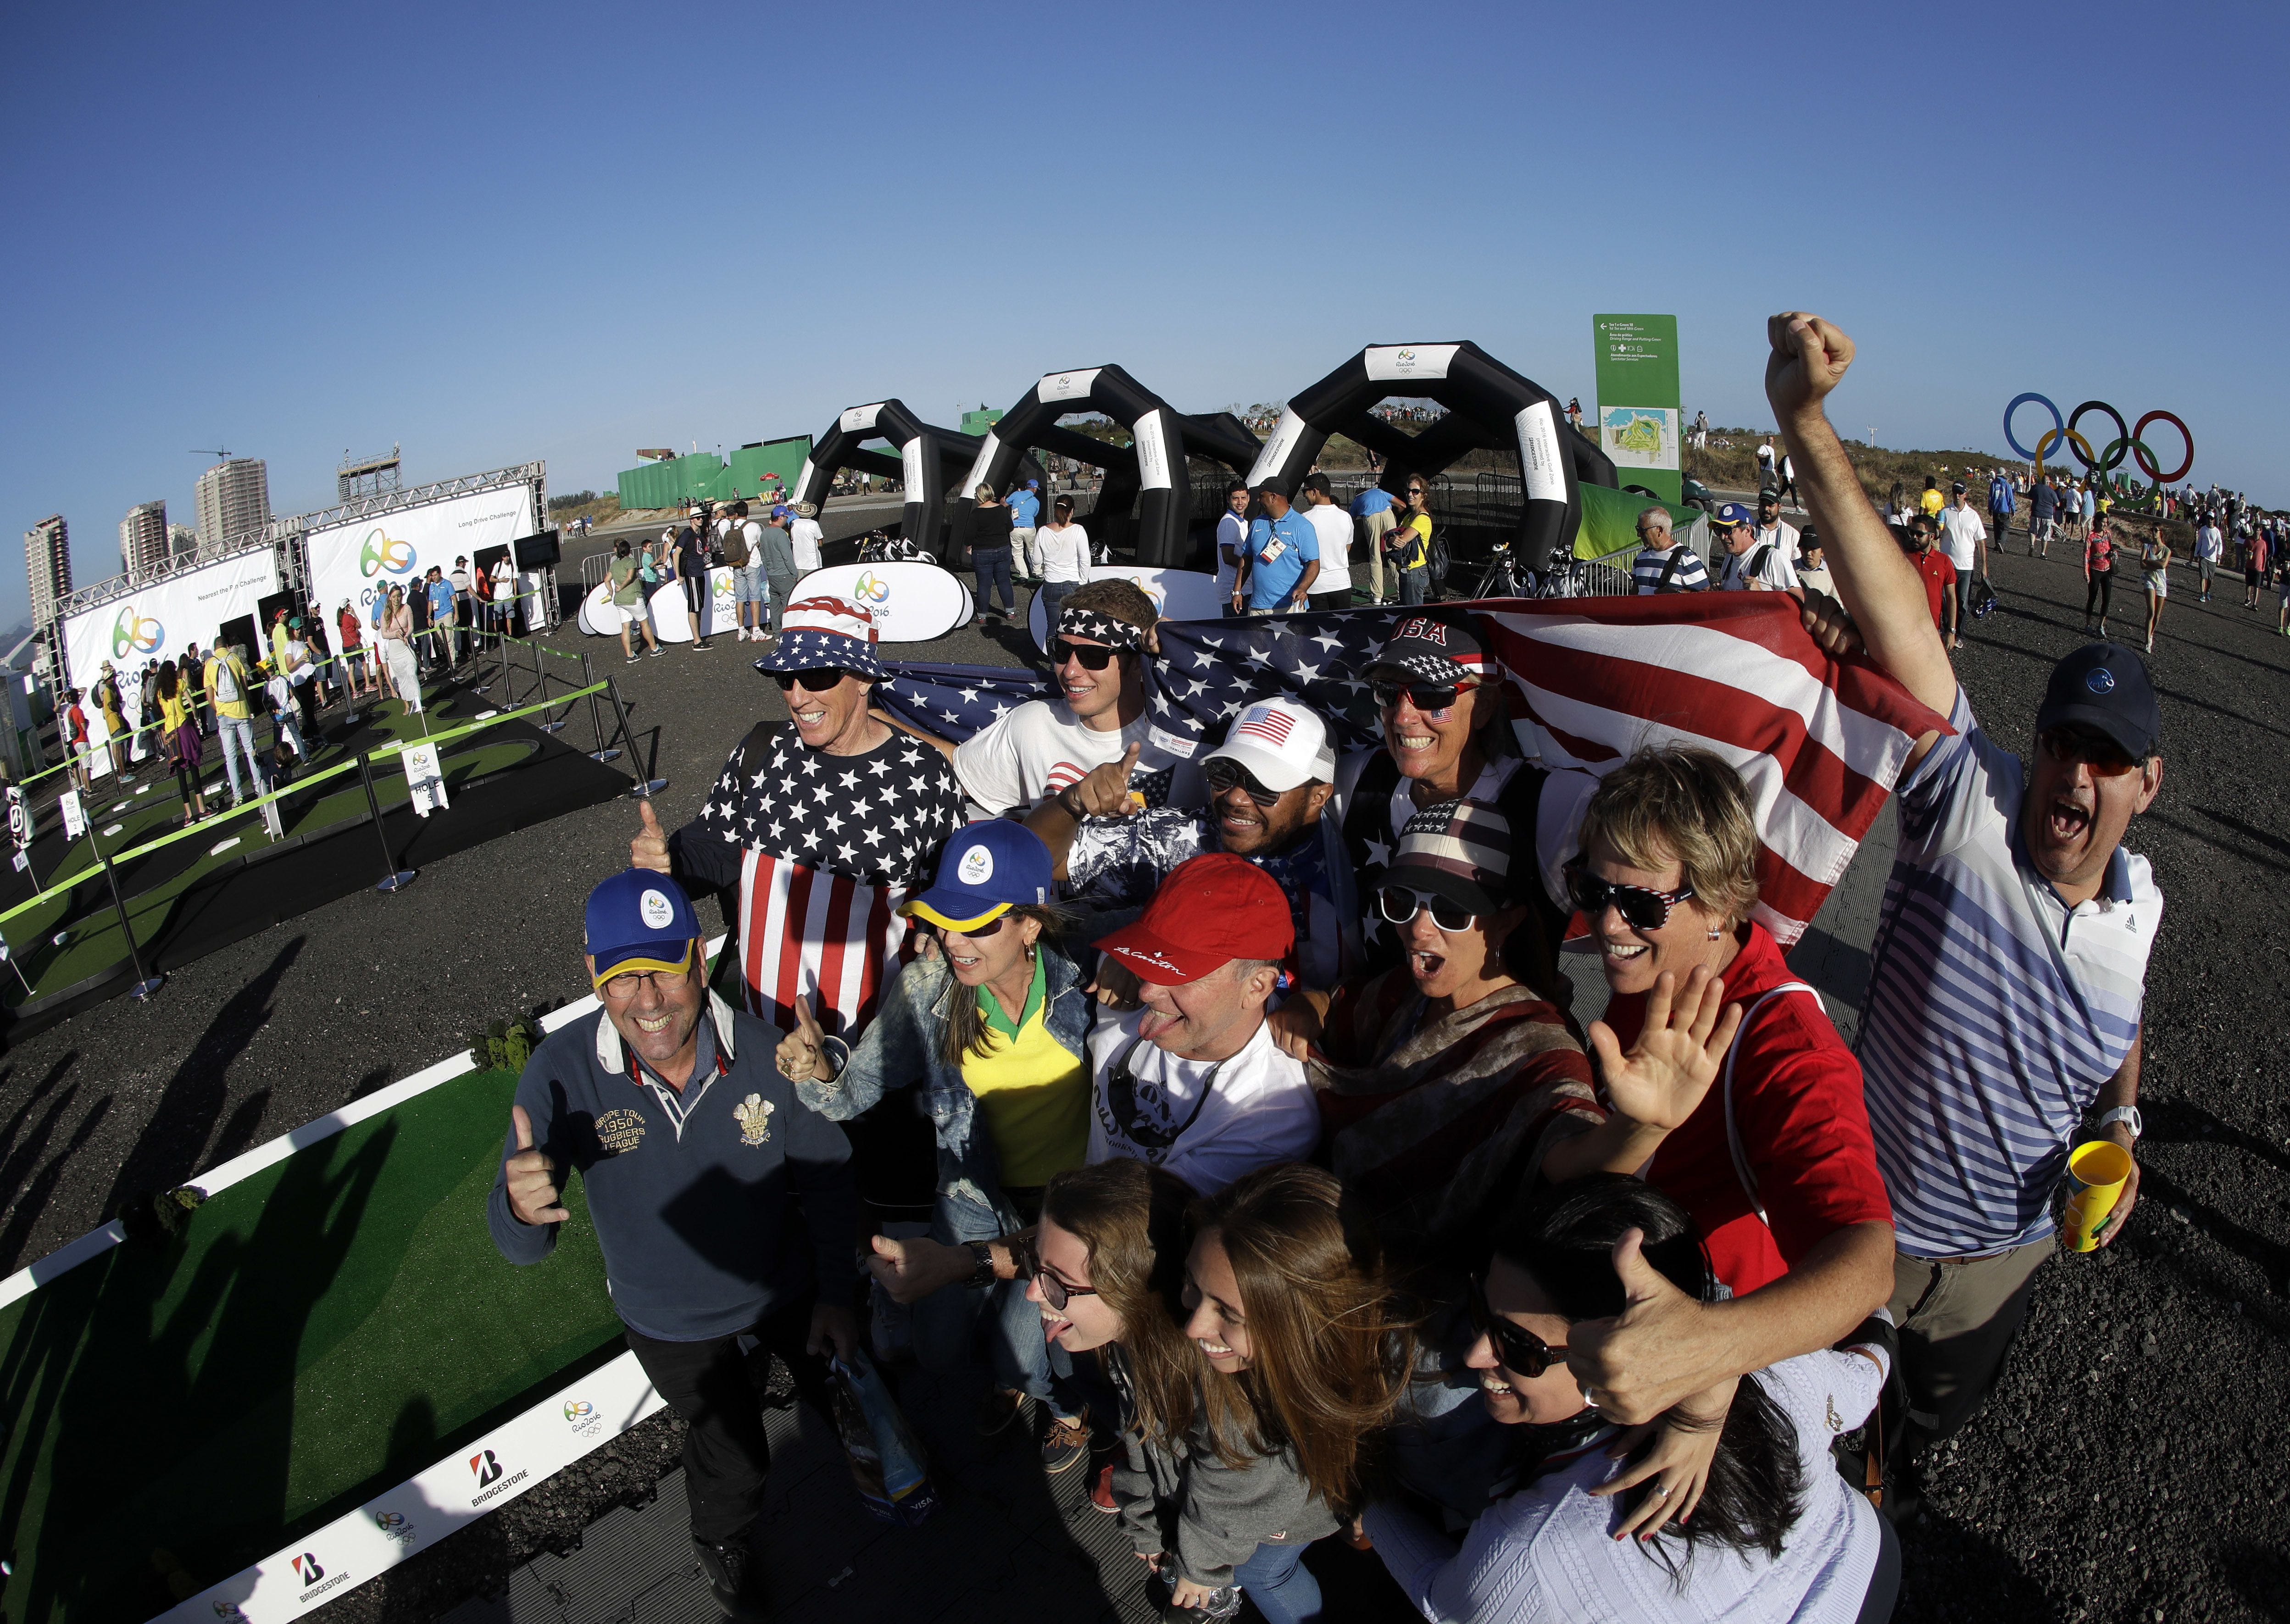 Golf fans pose for pictures in the Fan Zone near the 17th hole during the third round of the men's golf event at the 2016 Summer Olympics in Rio de Janeiro, Brazil, Saturday, Aug. 13, 2016. (AP Photo/Chris Carlson)